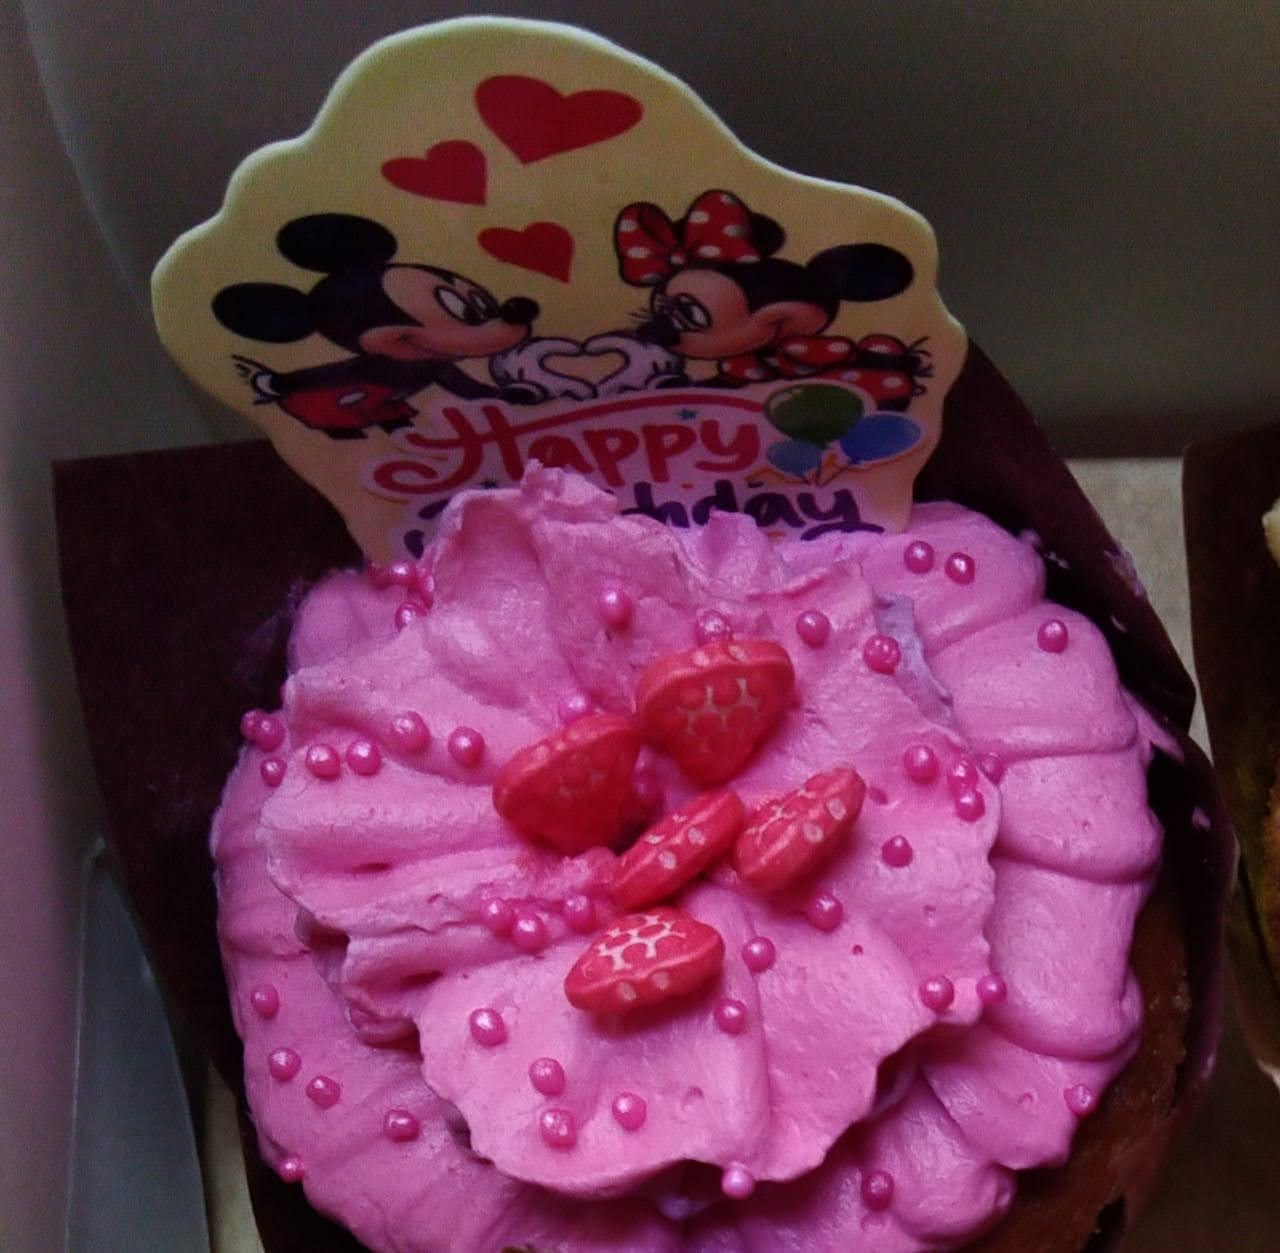 Assorted cup cakes(6 pieces) Designs, Images, Price Near Me